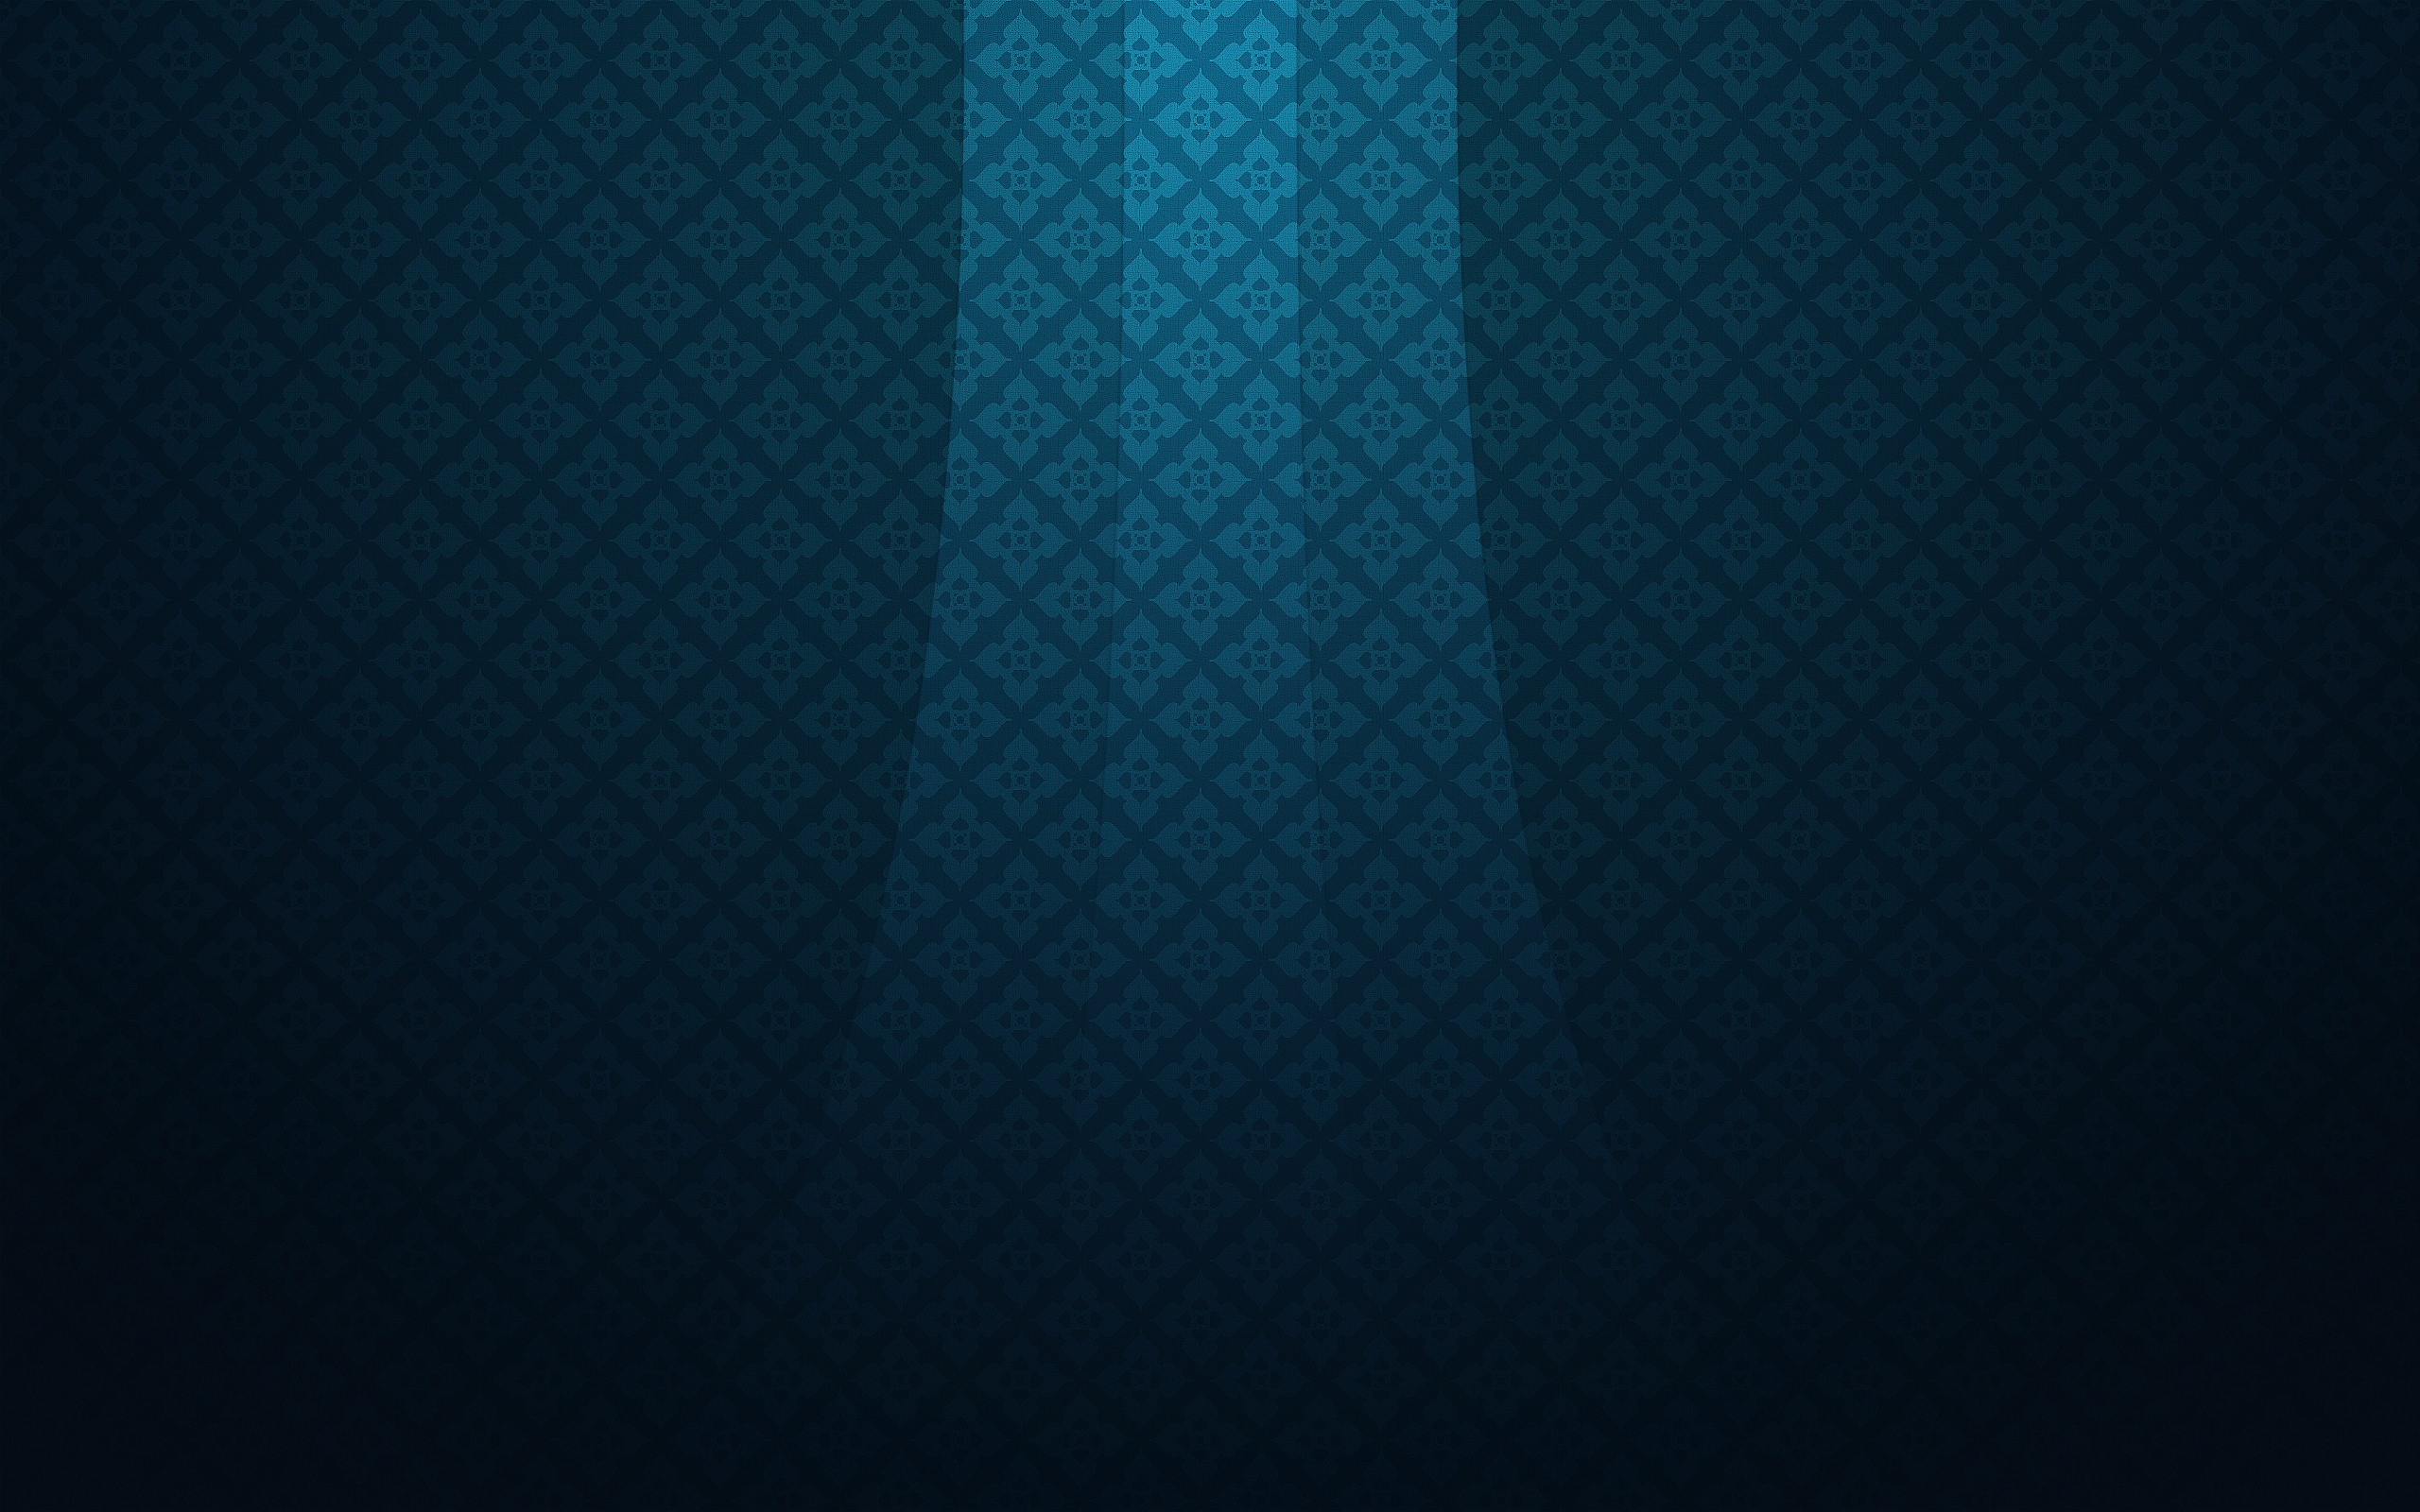 minimalist wallpapers pattern blue wallpaper desktop 2560x1600 2560x1600